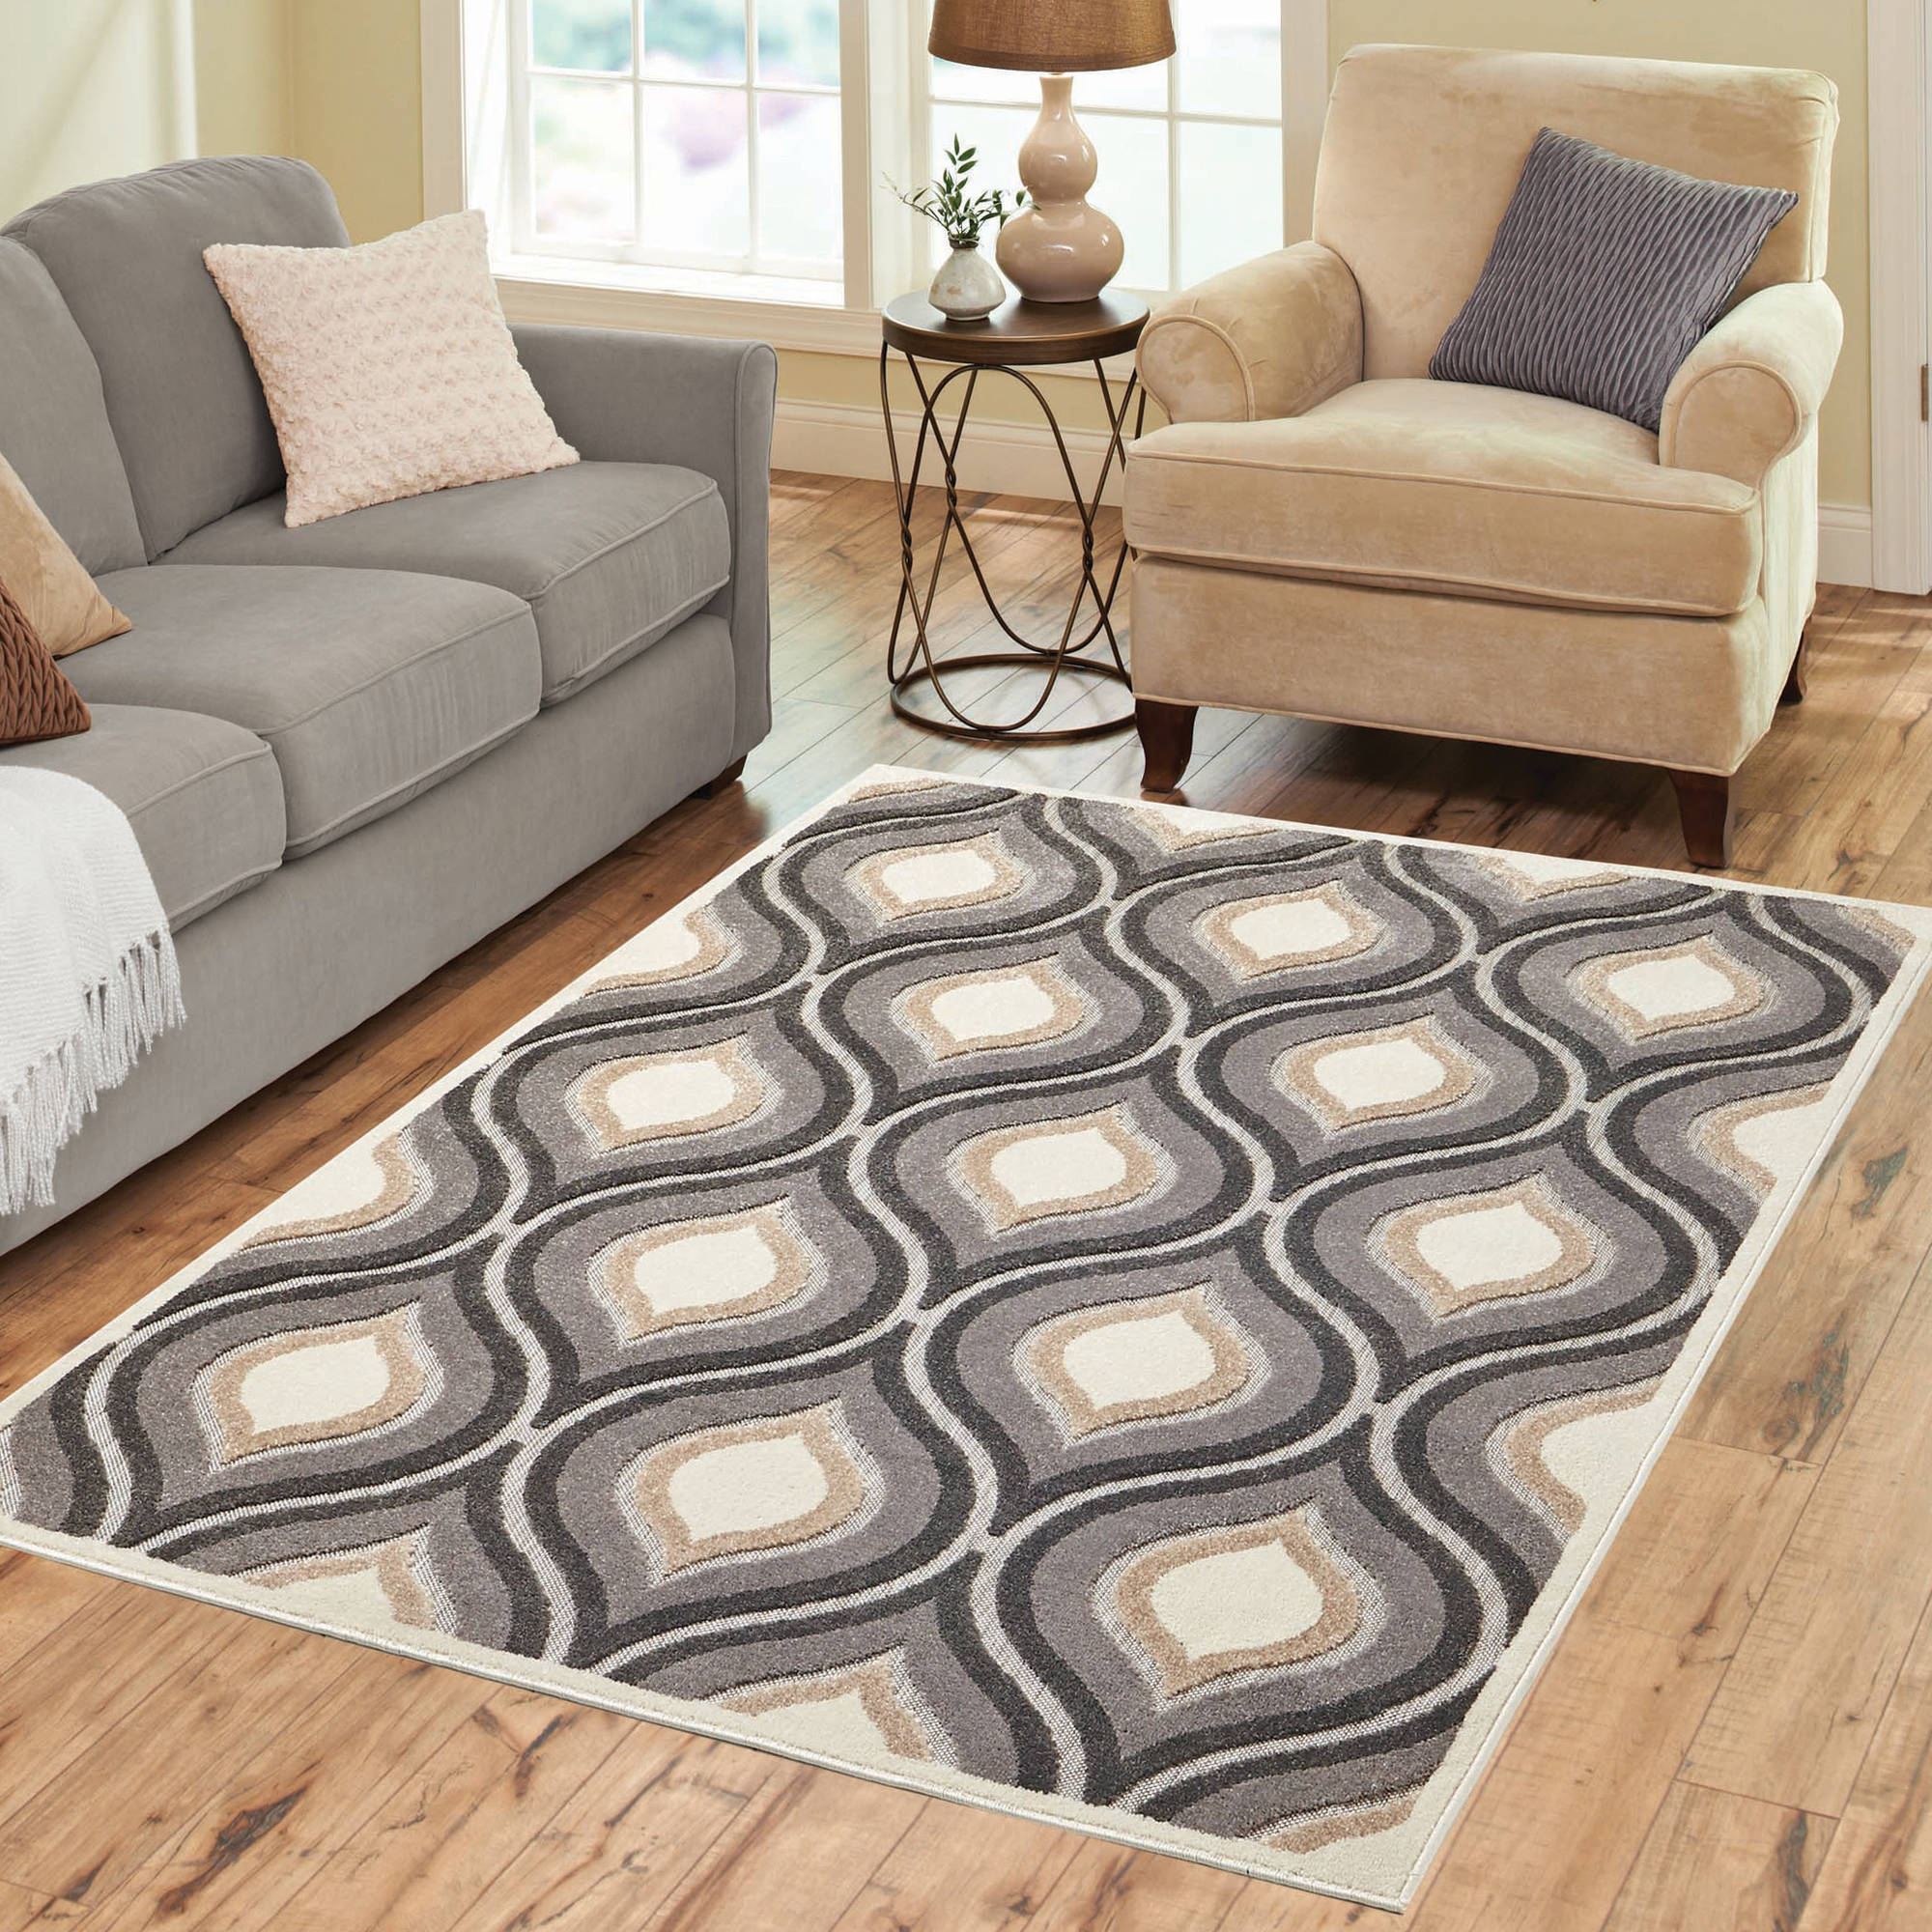 Better Homes and Gardens Gray Moroccan Area Rug